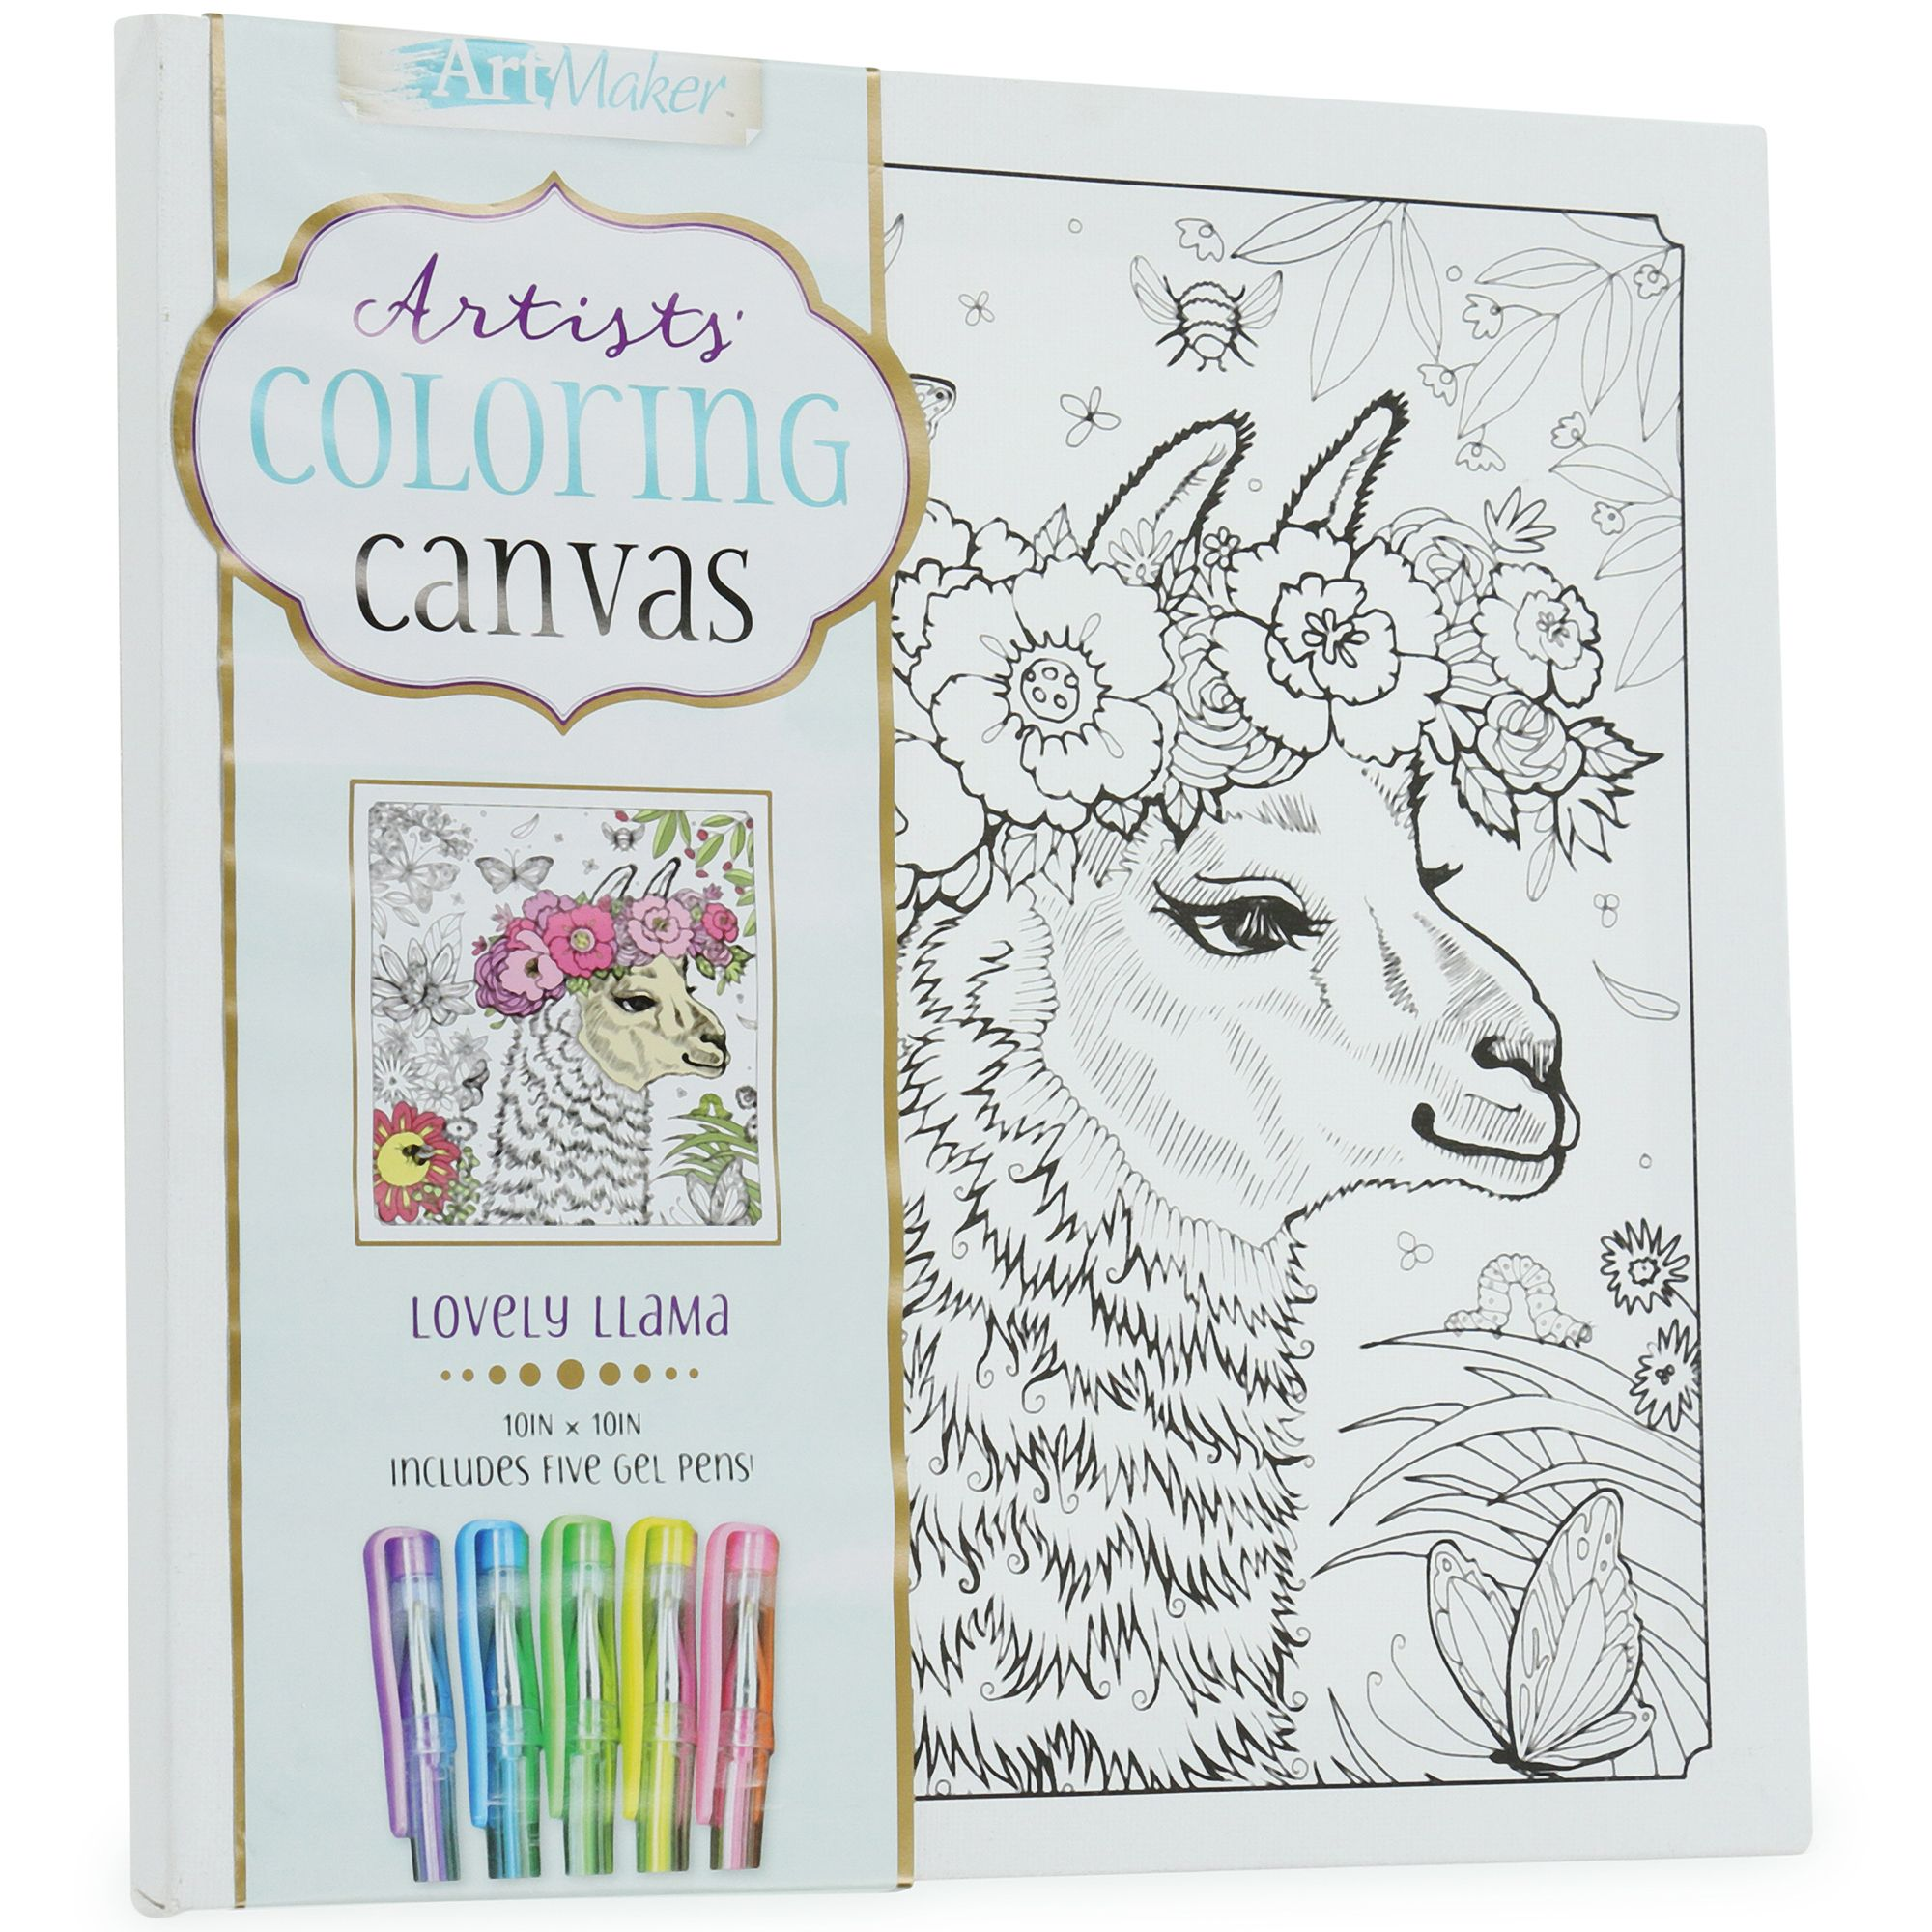 Artists Coloring Canvas With 5 Gel Pens 10in X 10in Five Below In 2020 Coloring Canvas Gel Pens Artist